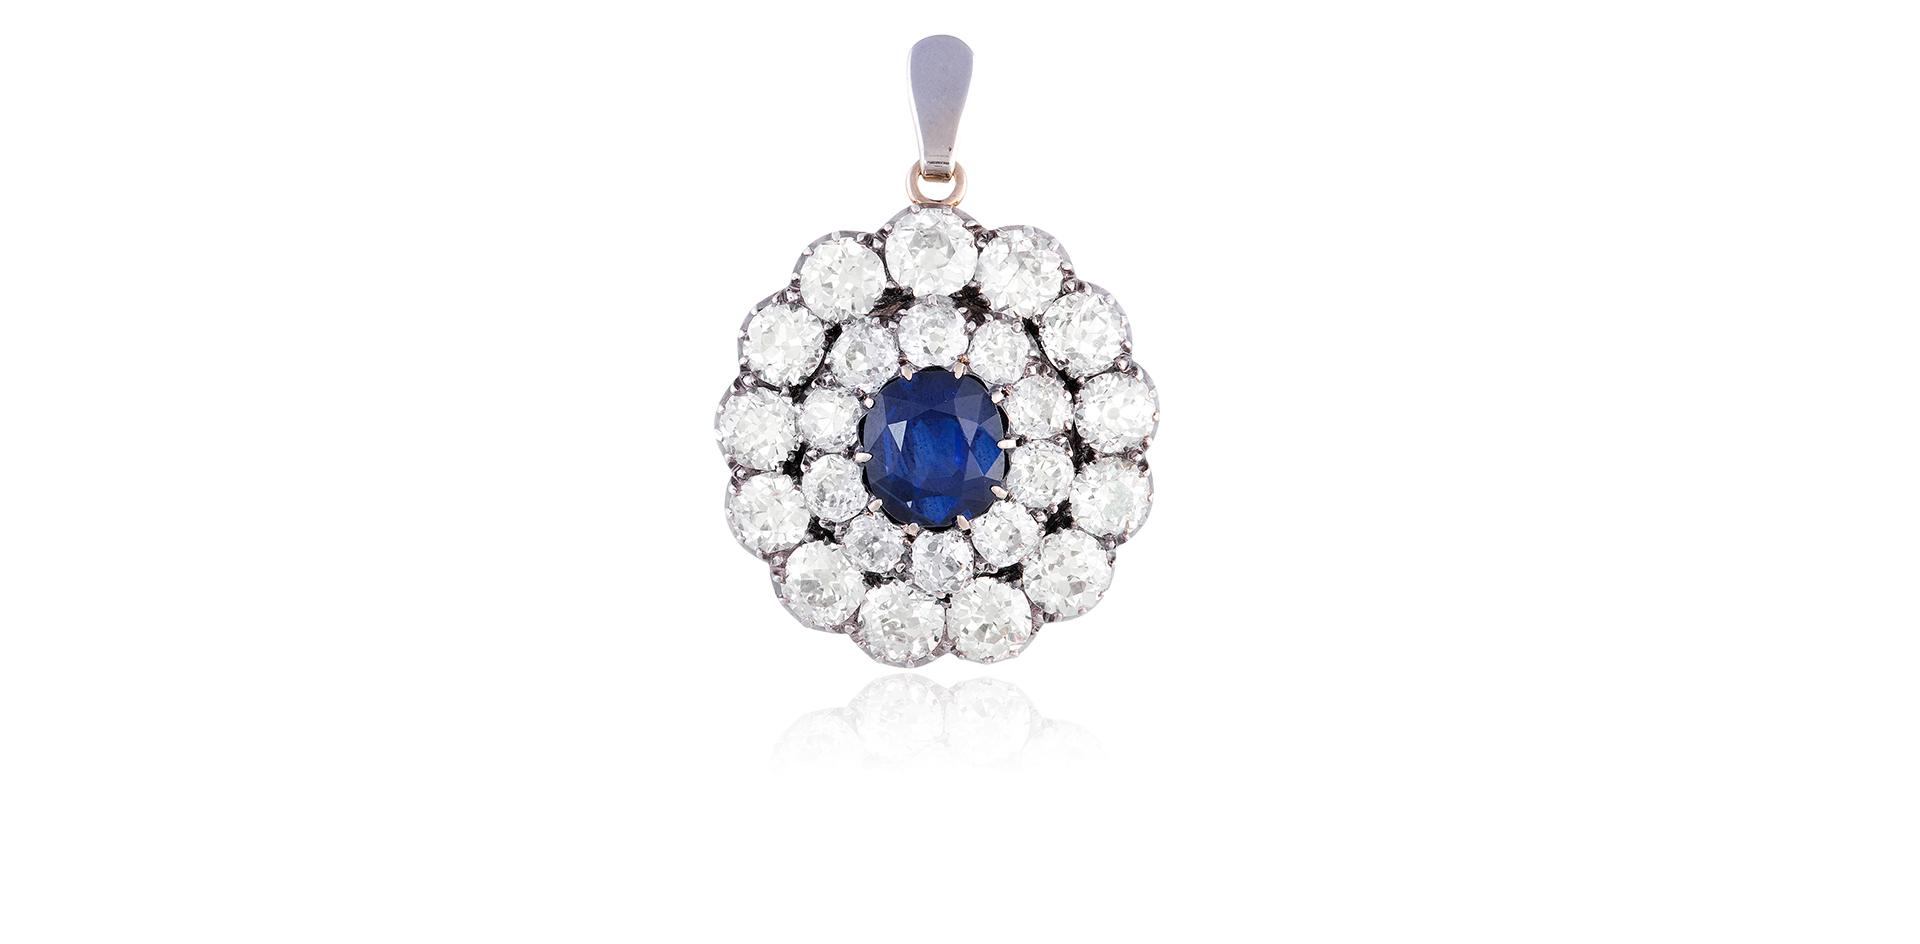 A LATE 19TH CENTURY SAPPHIRE AND DIAMOND PENDANT/ BROOCH, CIRCA 1890 - Sold For €20,000